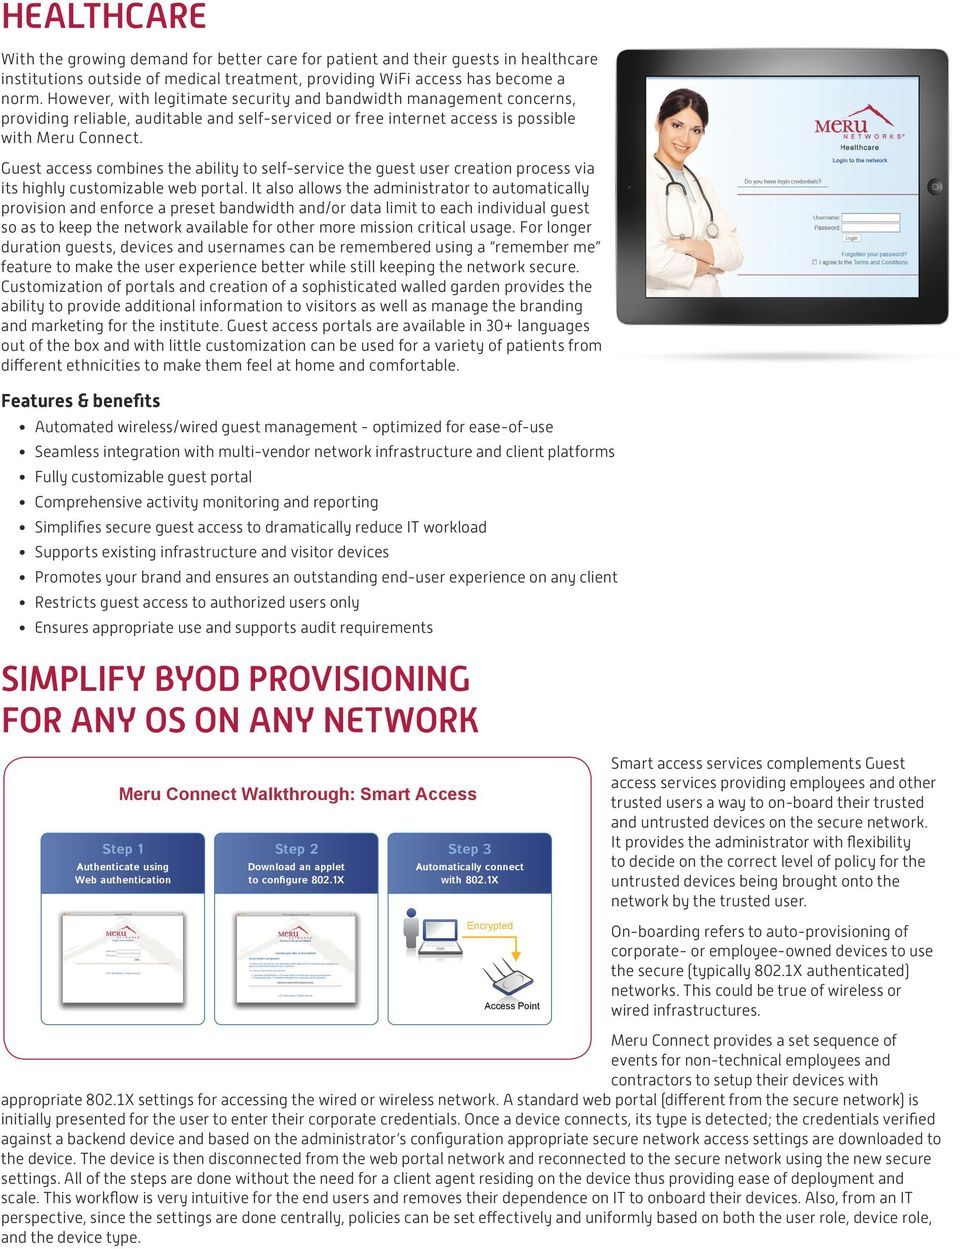 Meru Connect Easy To Use Flexible Guest Access Simplified Byod On Cloudpath Wireless Network Diagram Combines The Ability Self Service User Creation Process Via Its